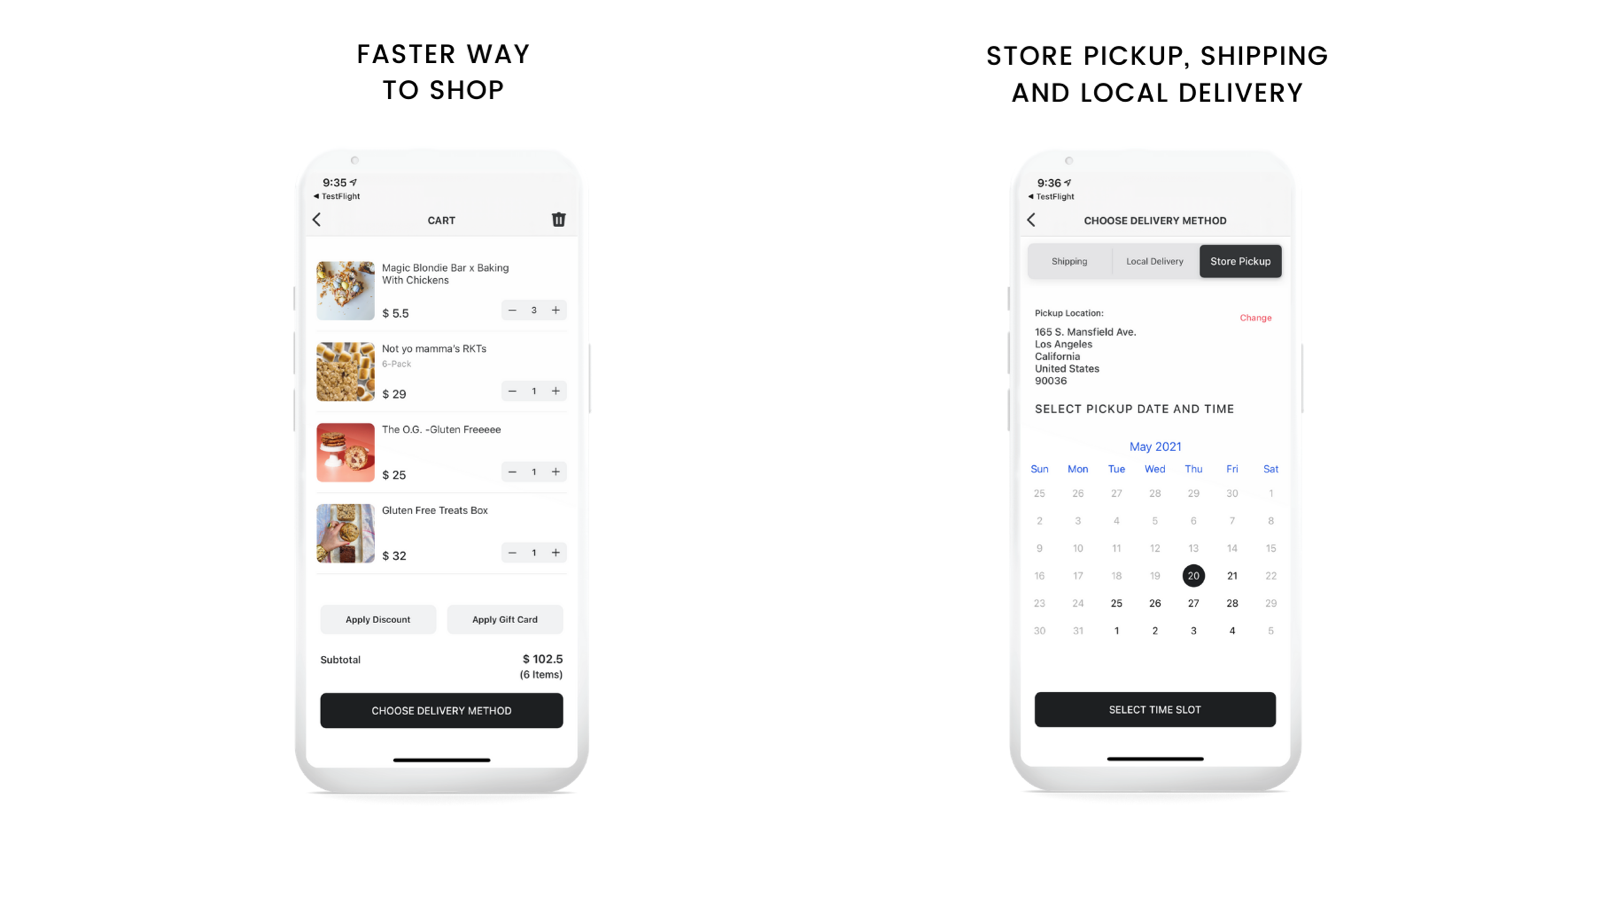 Shopify Mobile App with Store Pickup and Delivery